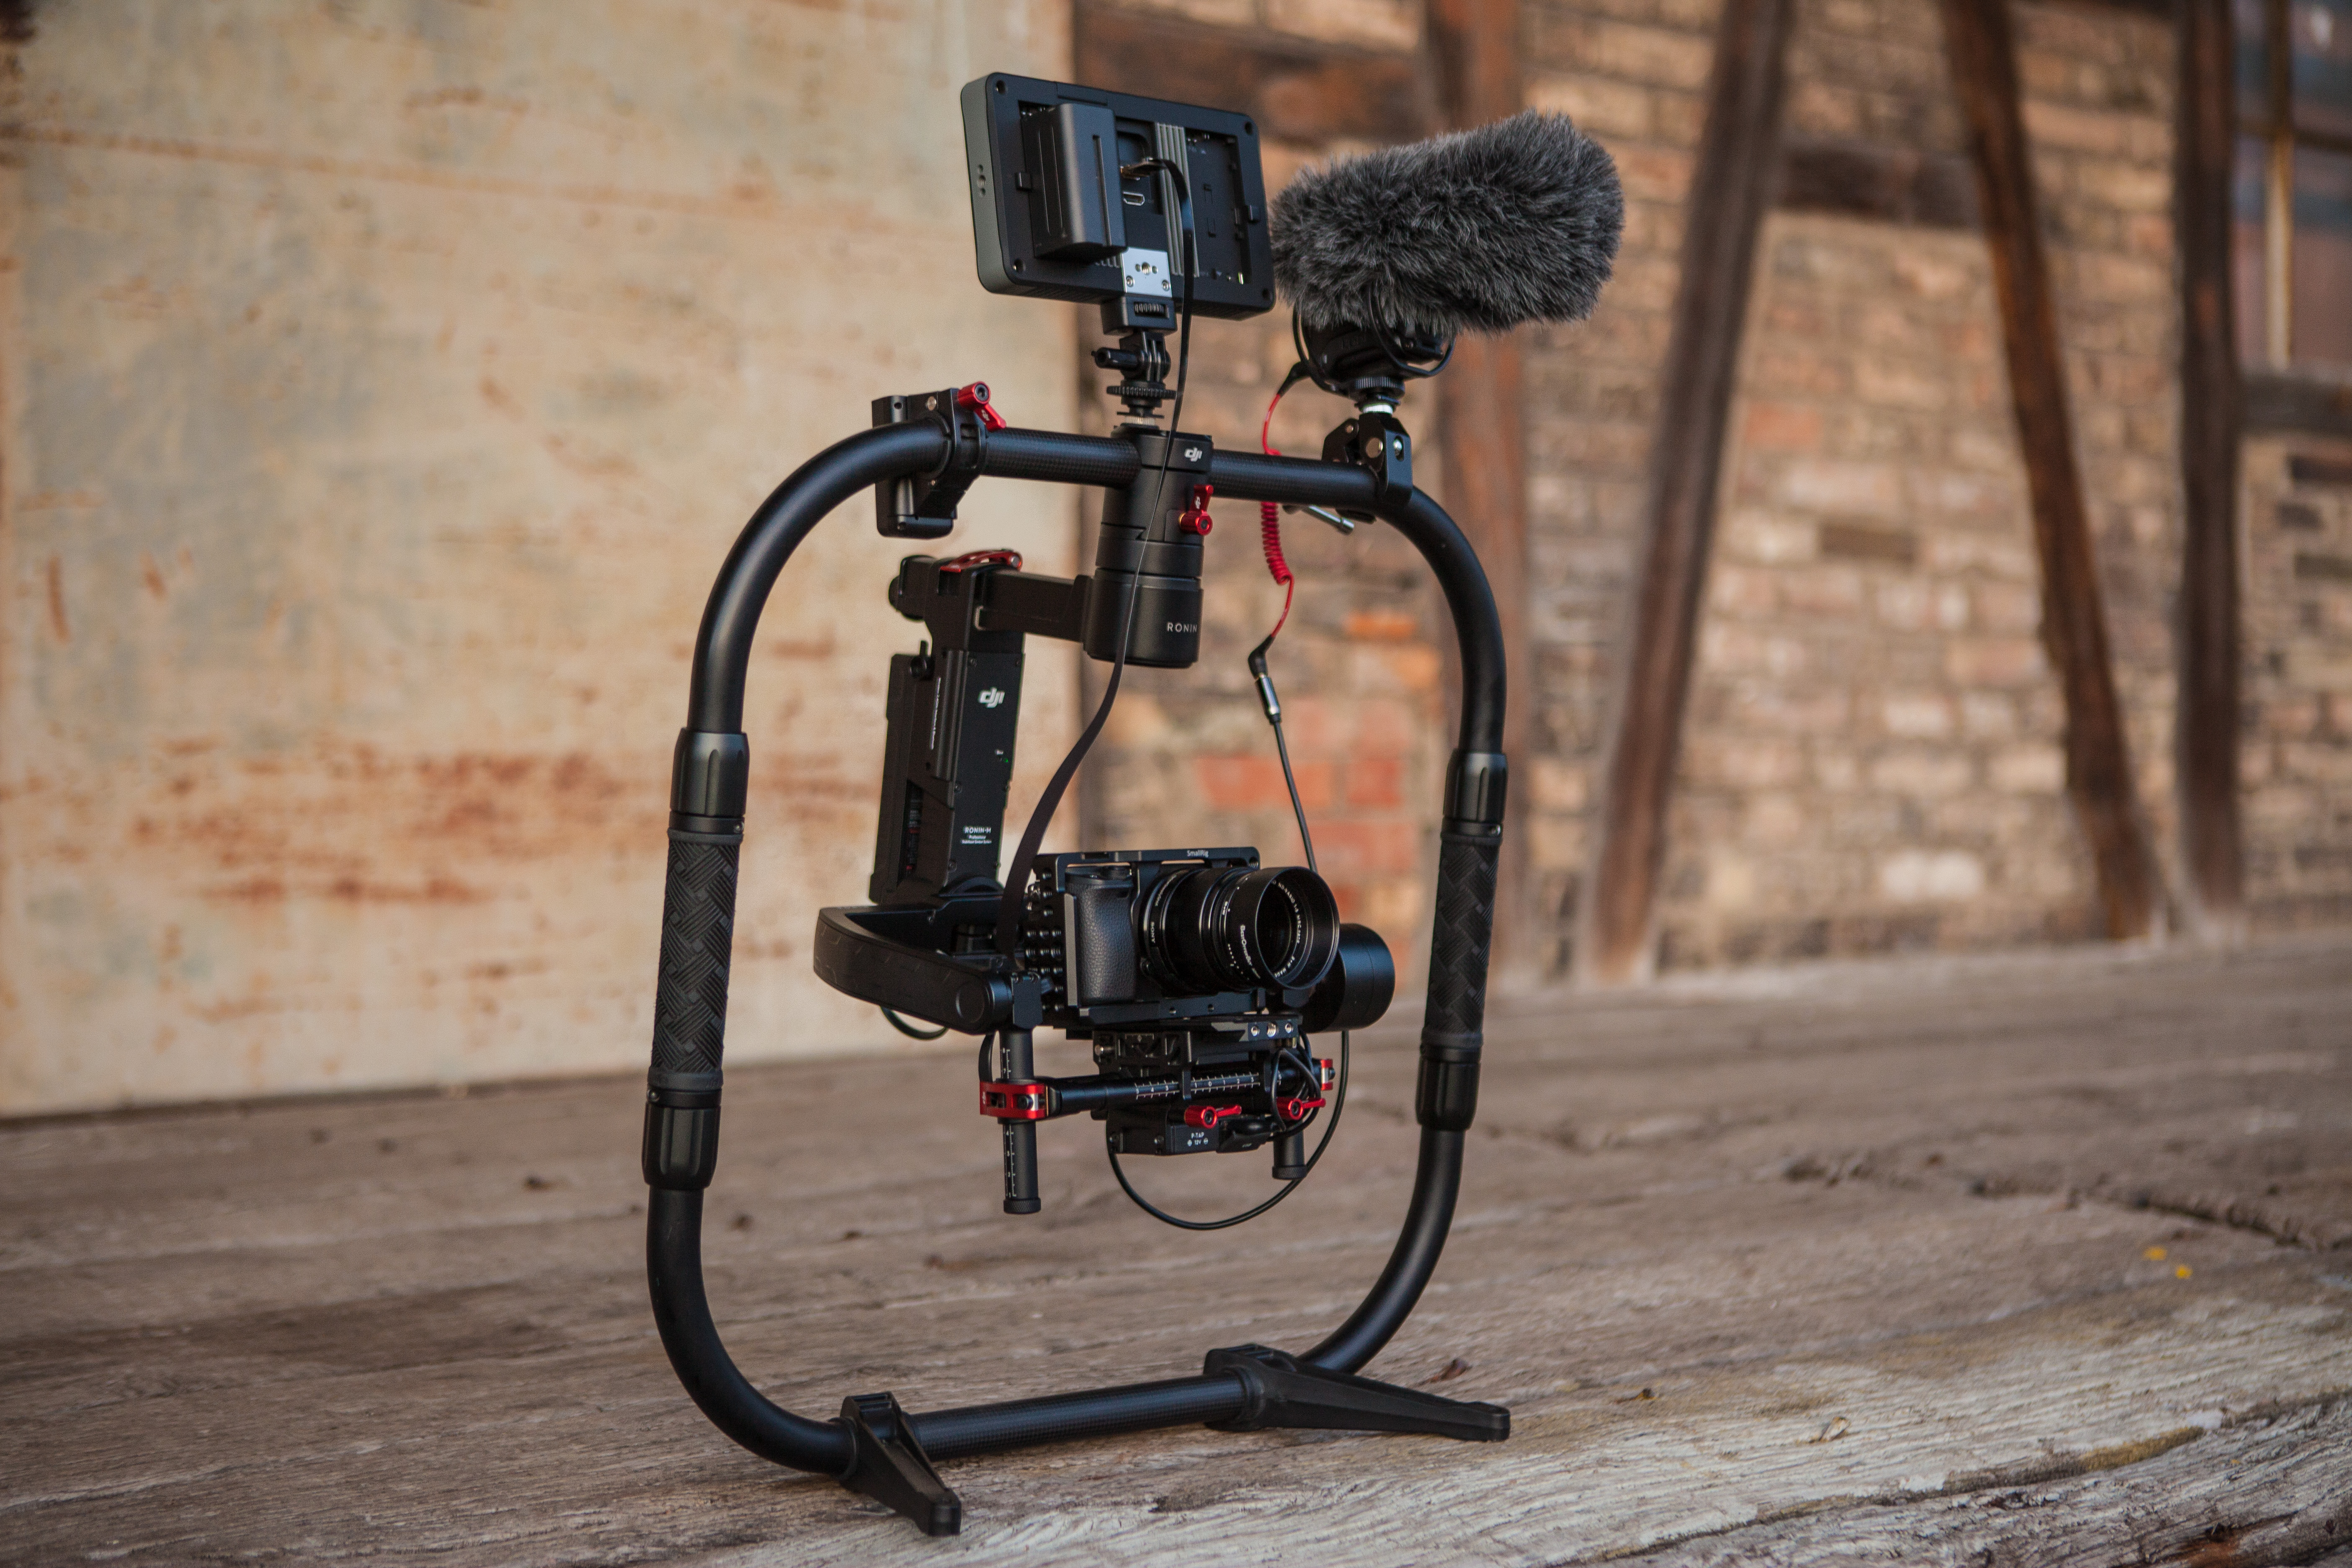 Black Camera With Stand